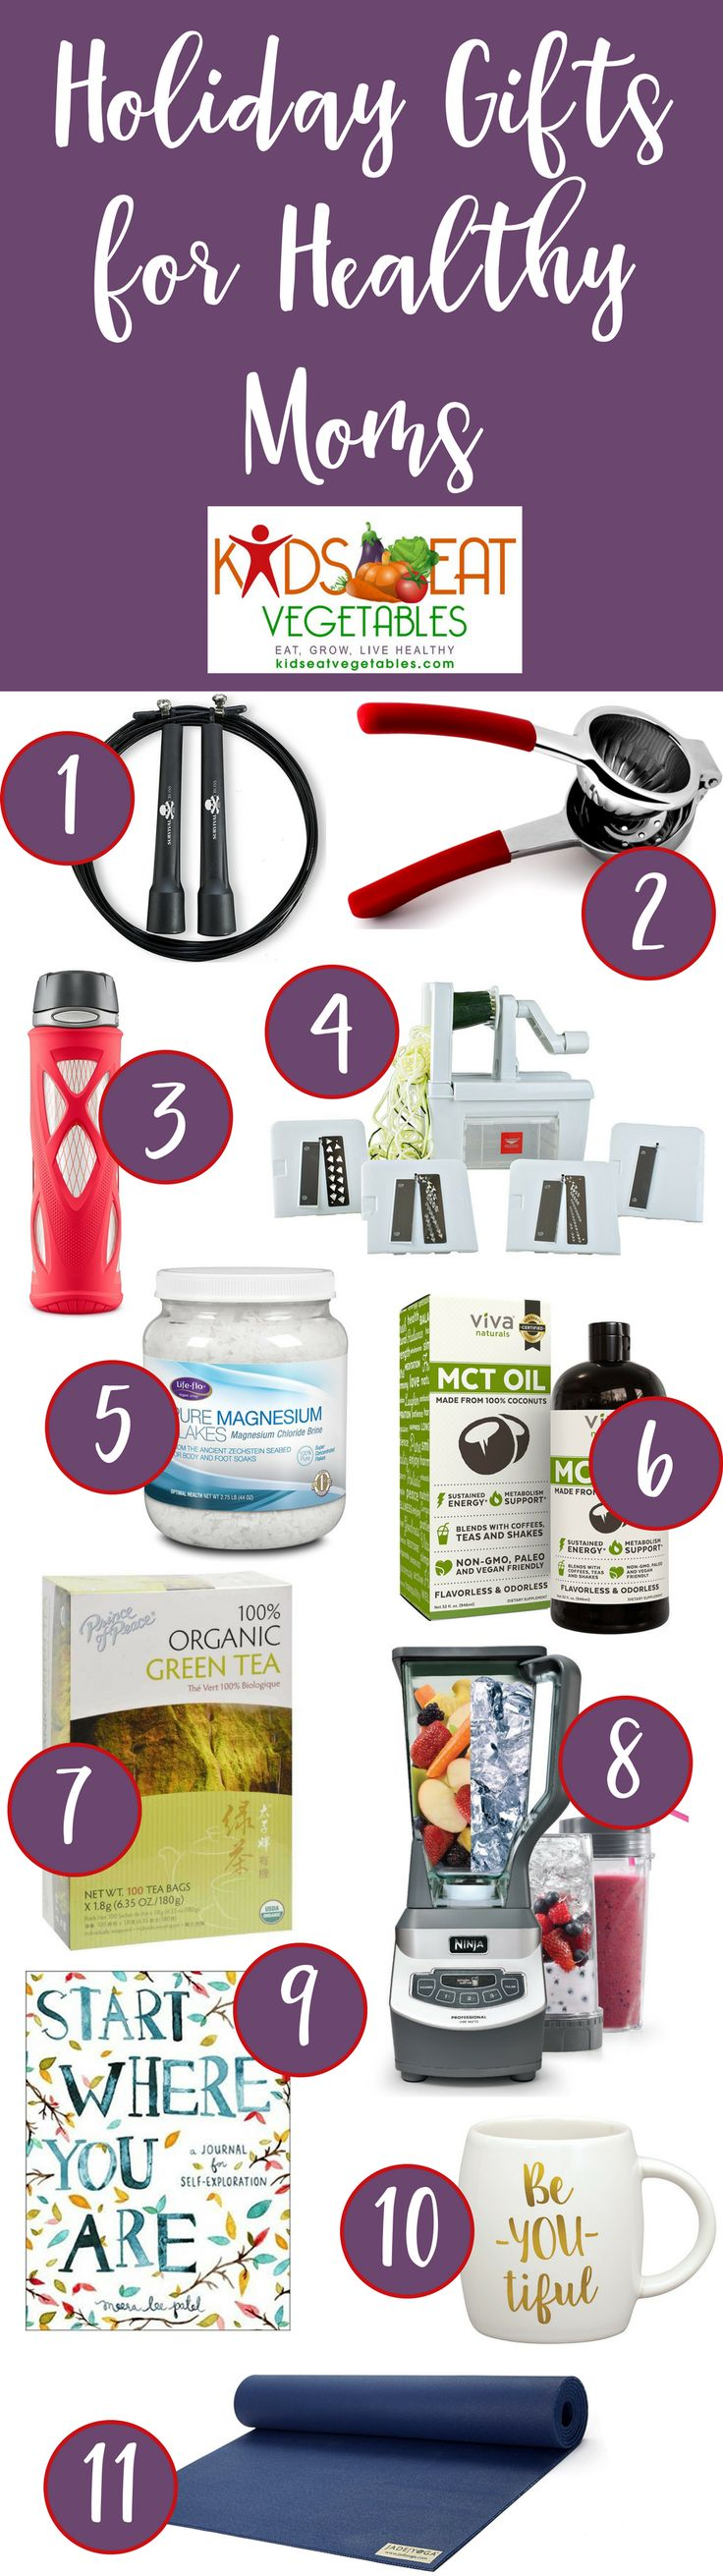 holiday gifts for healthy moms